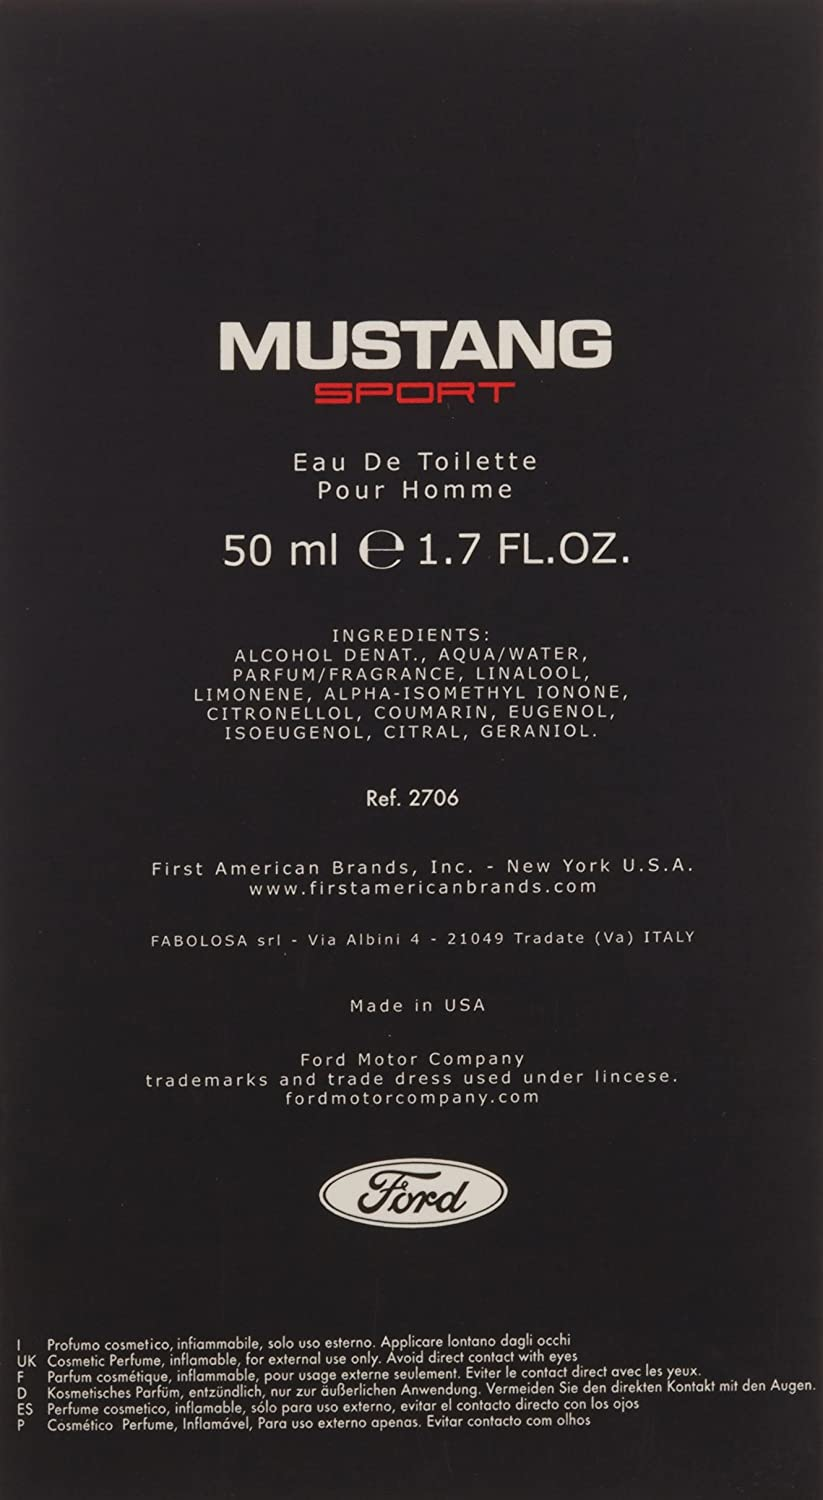 Mustang Sport Homme Eau de Toilette, 1 (1 x 50 ml): Amazon